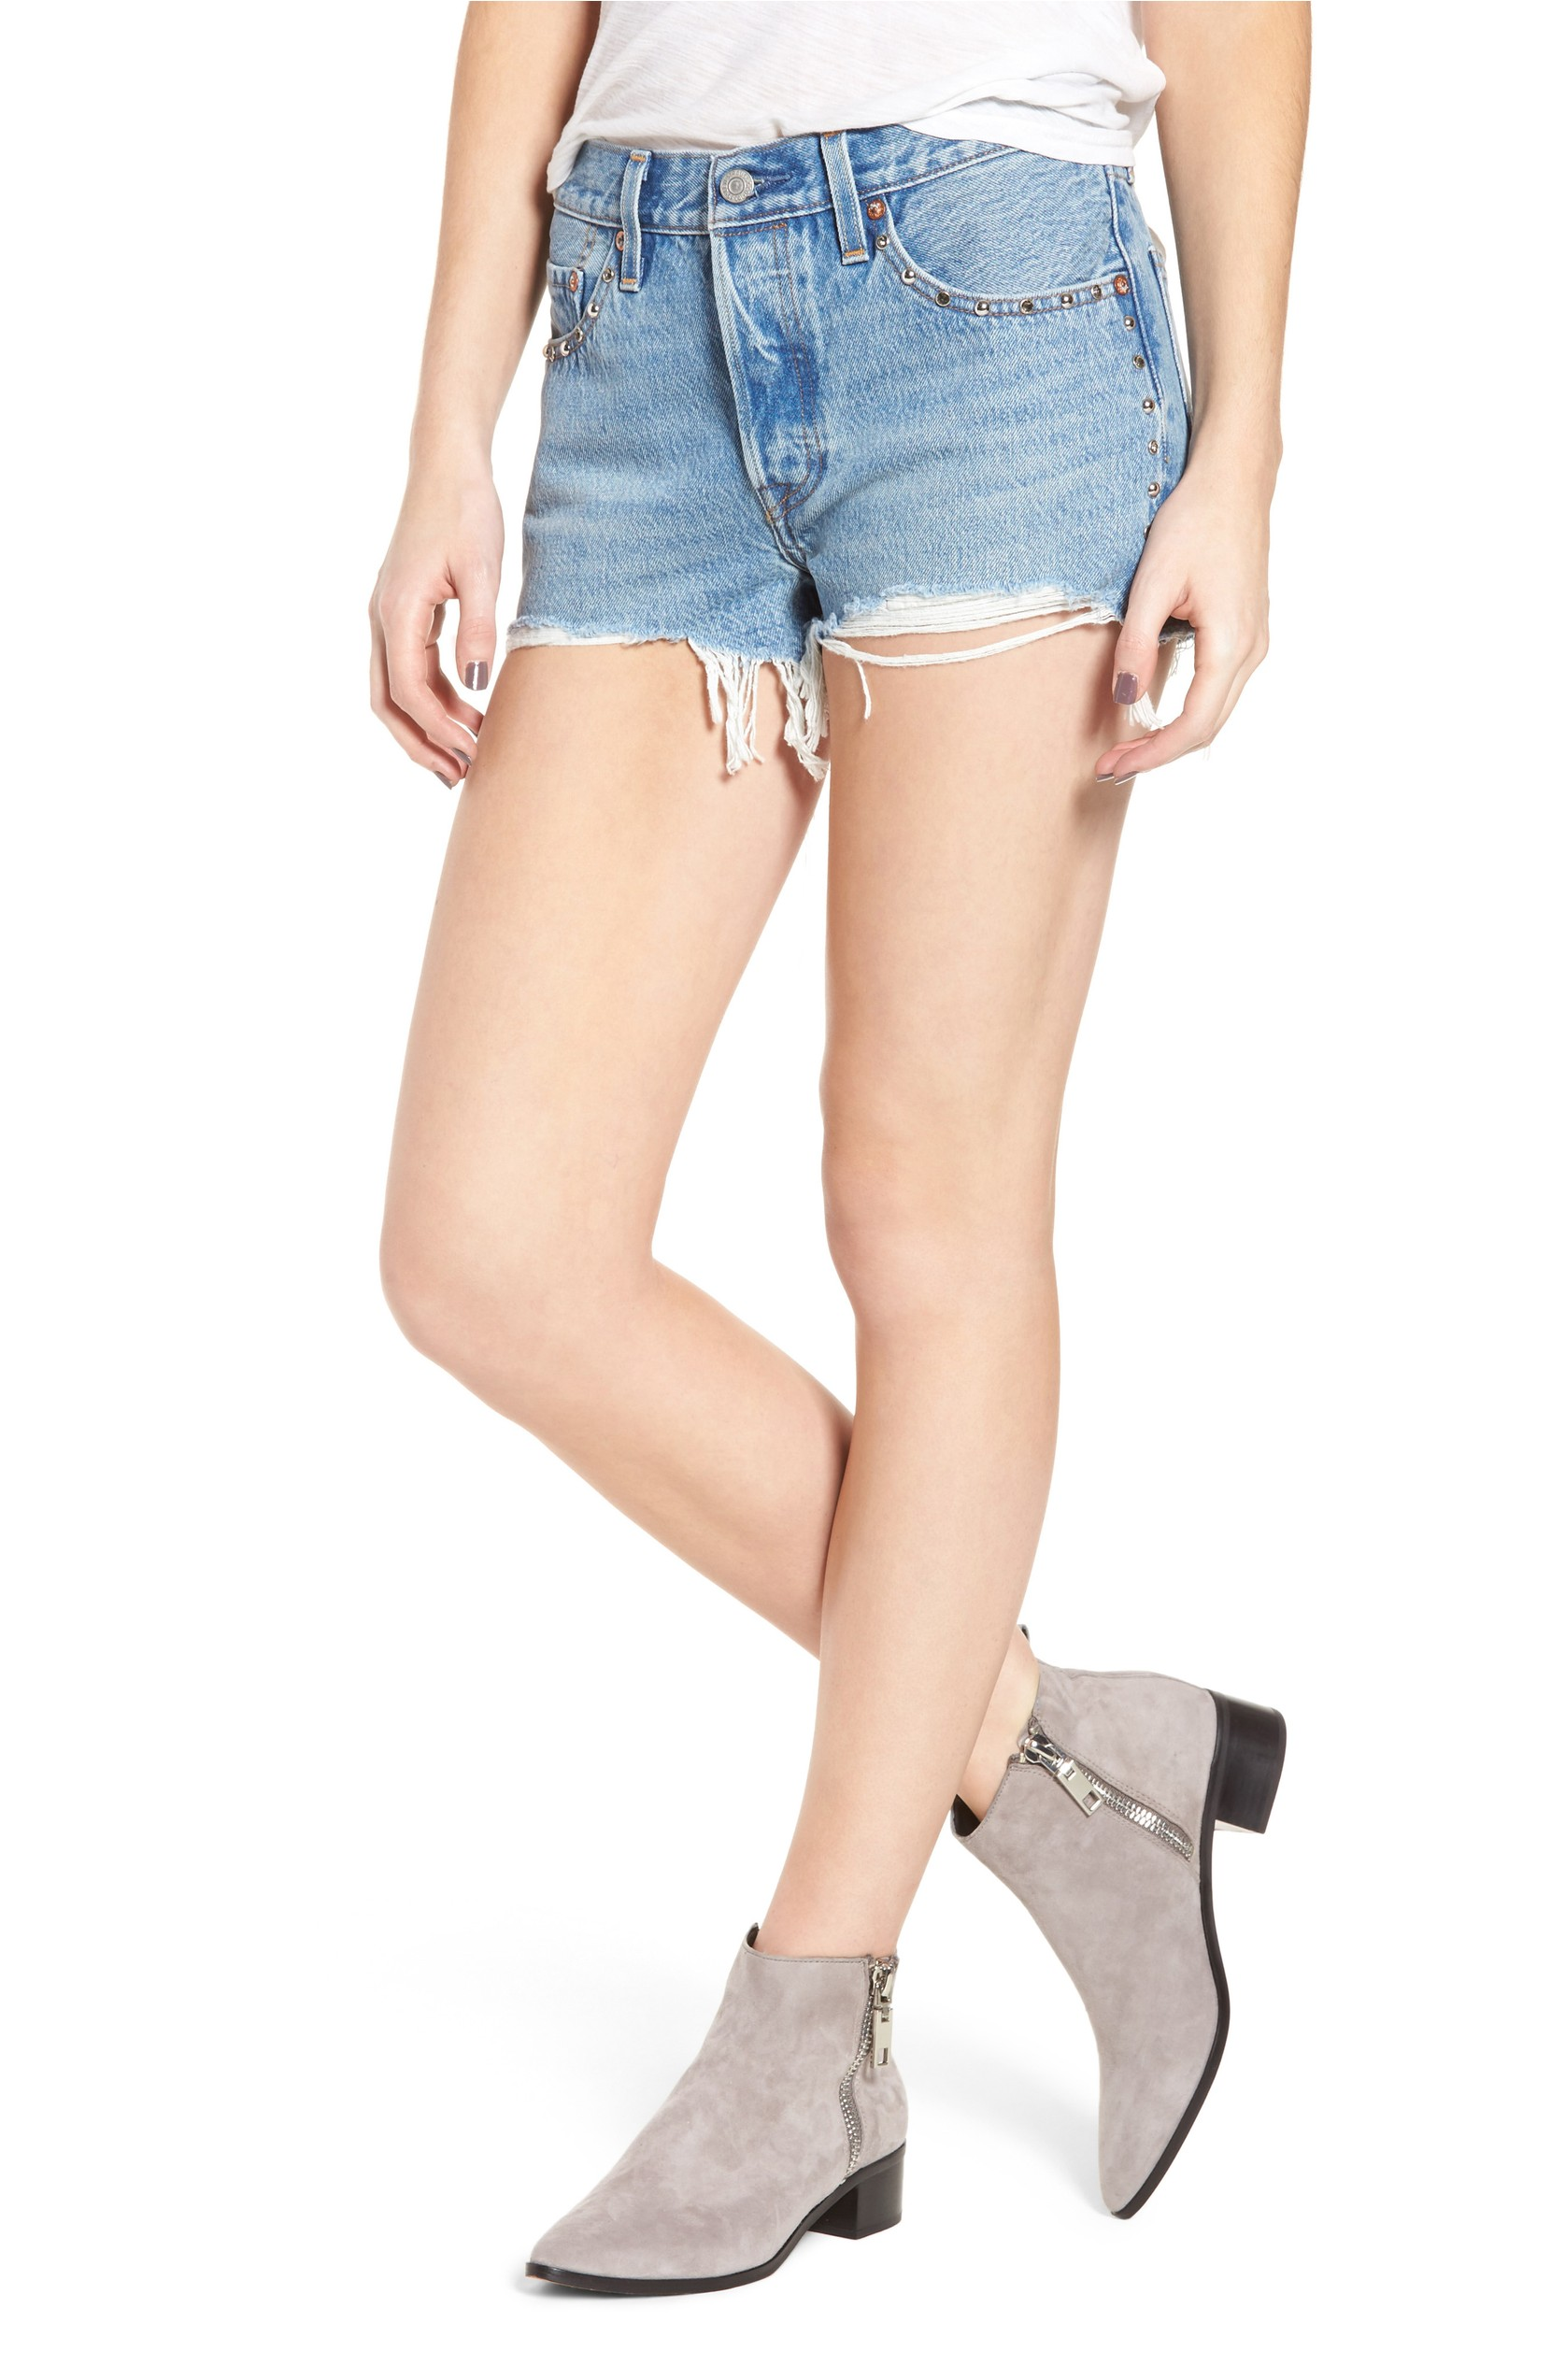 501 Distressed Cutoff Denim Shorts was originally $98.00 and is now $65. Wear your favorite 501 jeans through the entire season with these studded and frayed cutoff shorts based on the iconic straight fit.